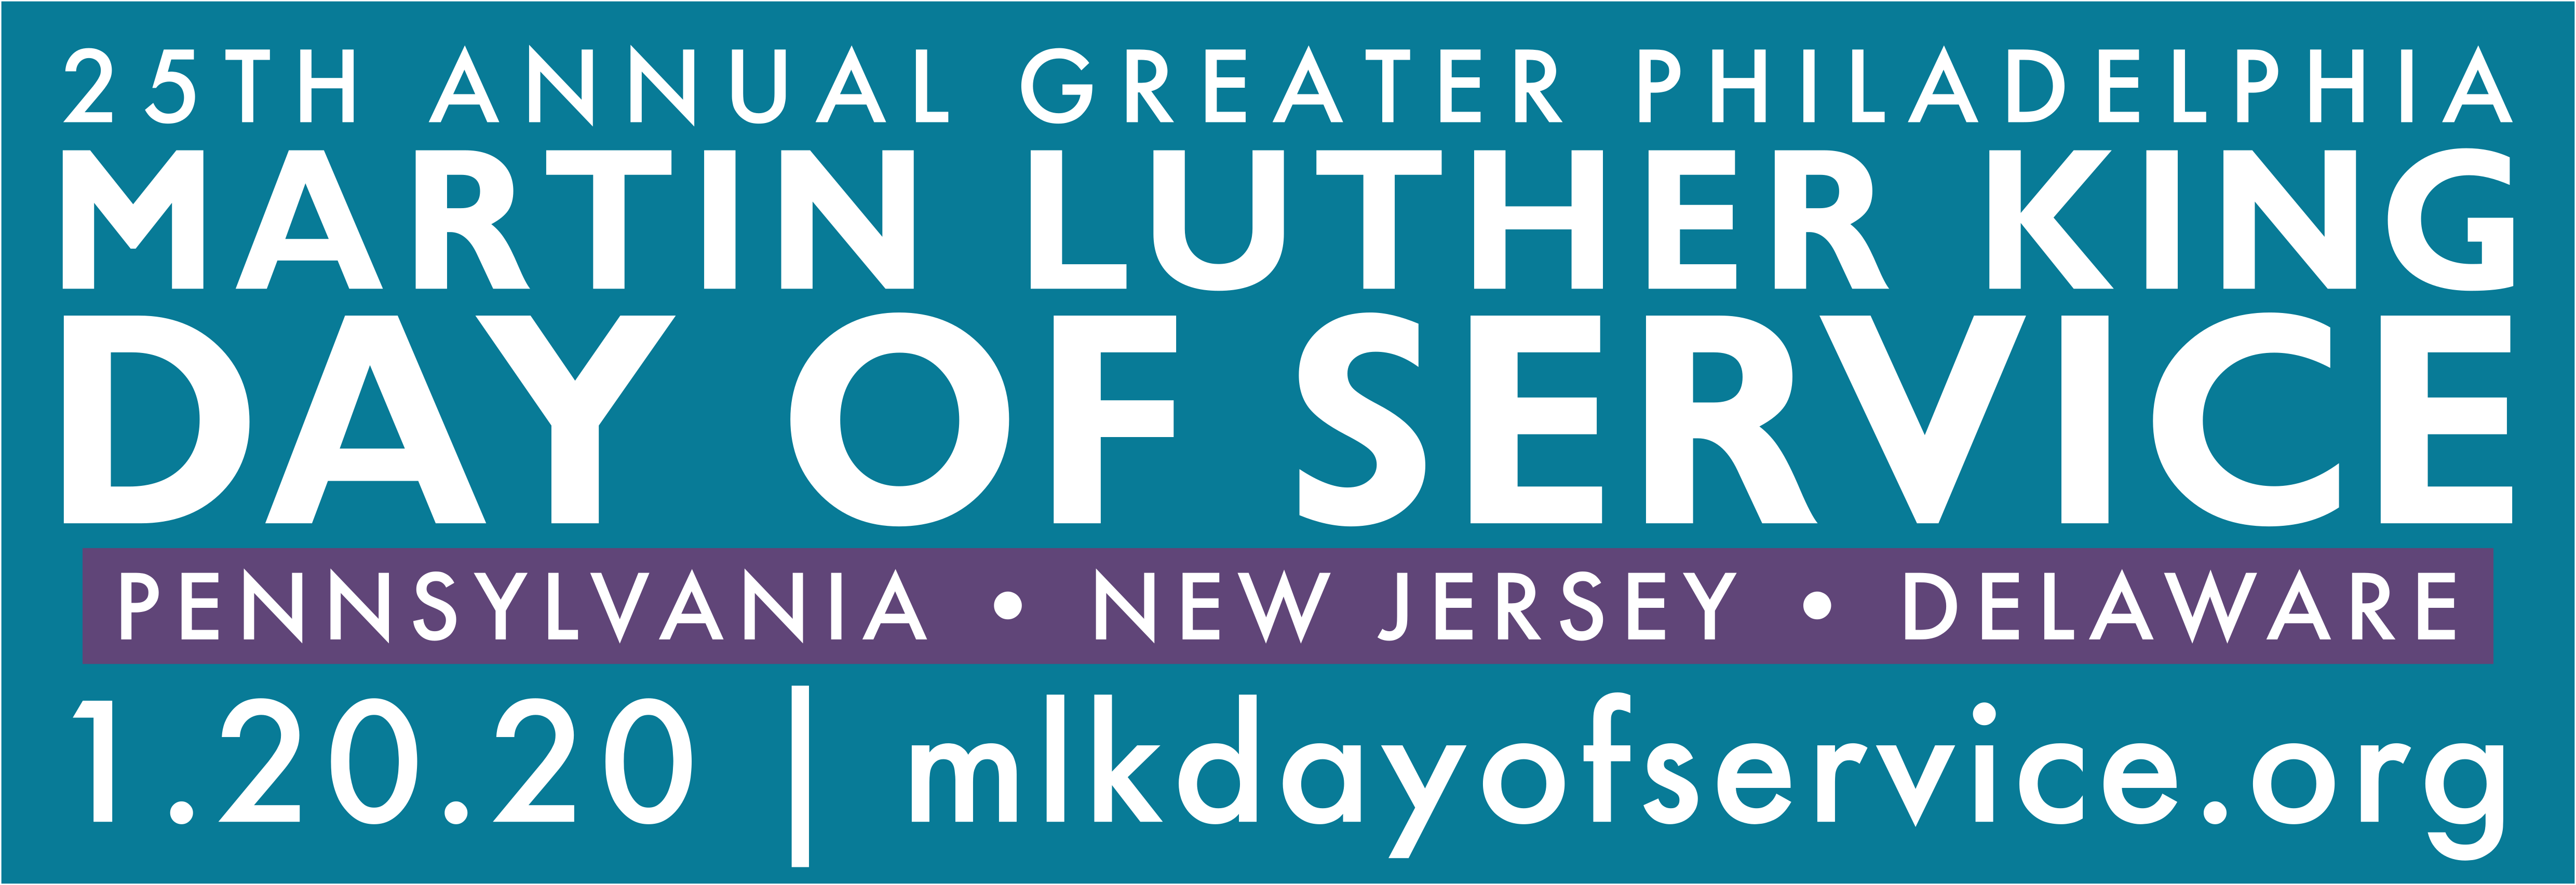 MARTIN LUTHER KING, JR. DAY OF SERVICE - 2020